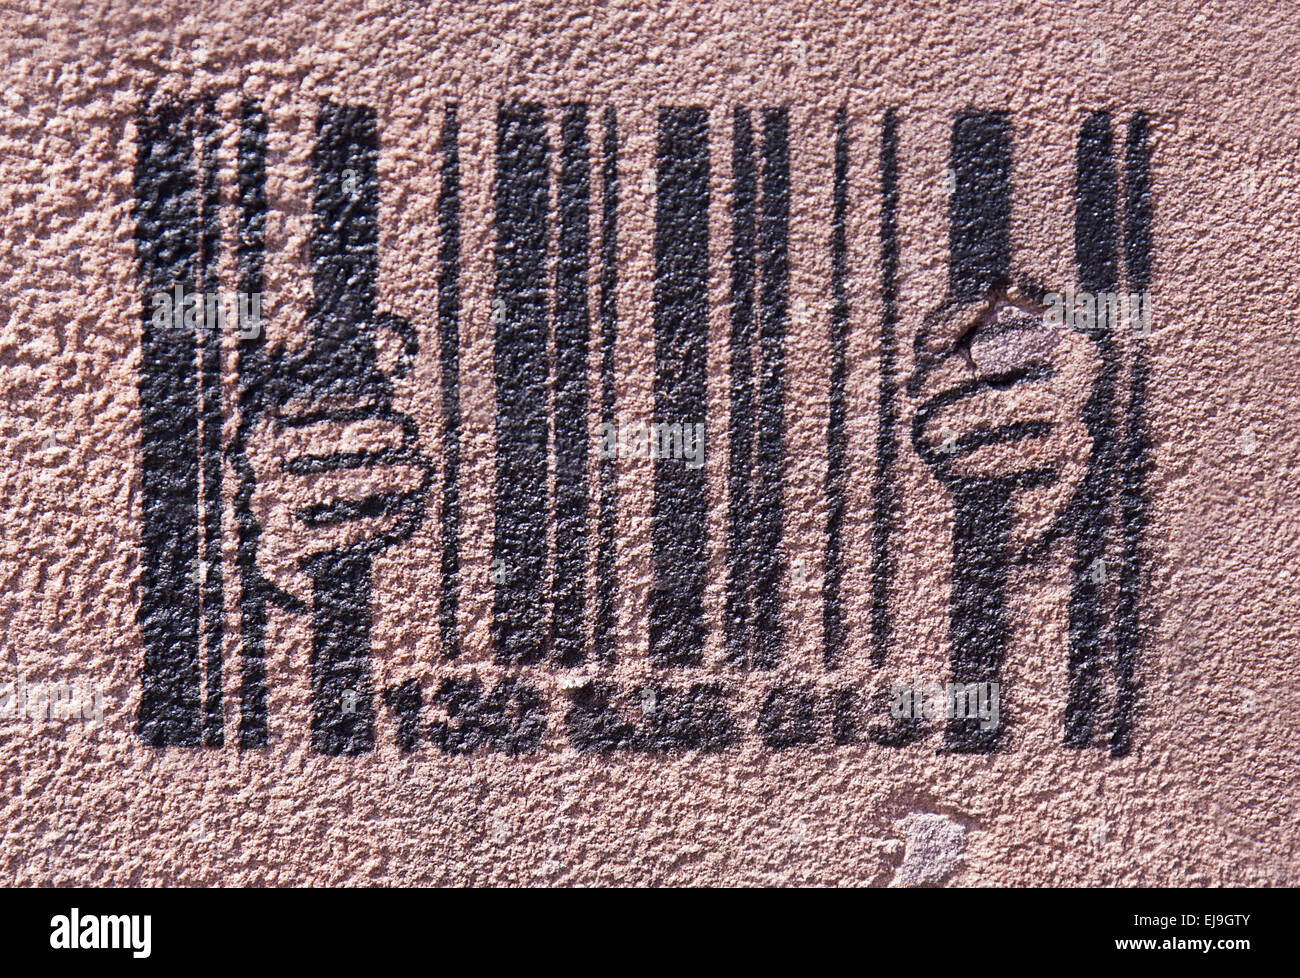 Bar code - Stock Image